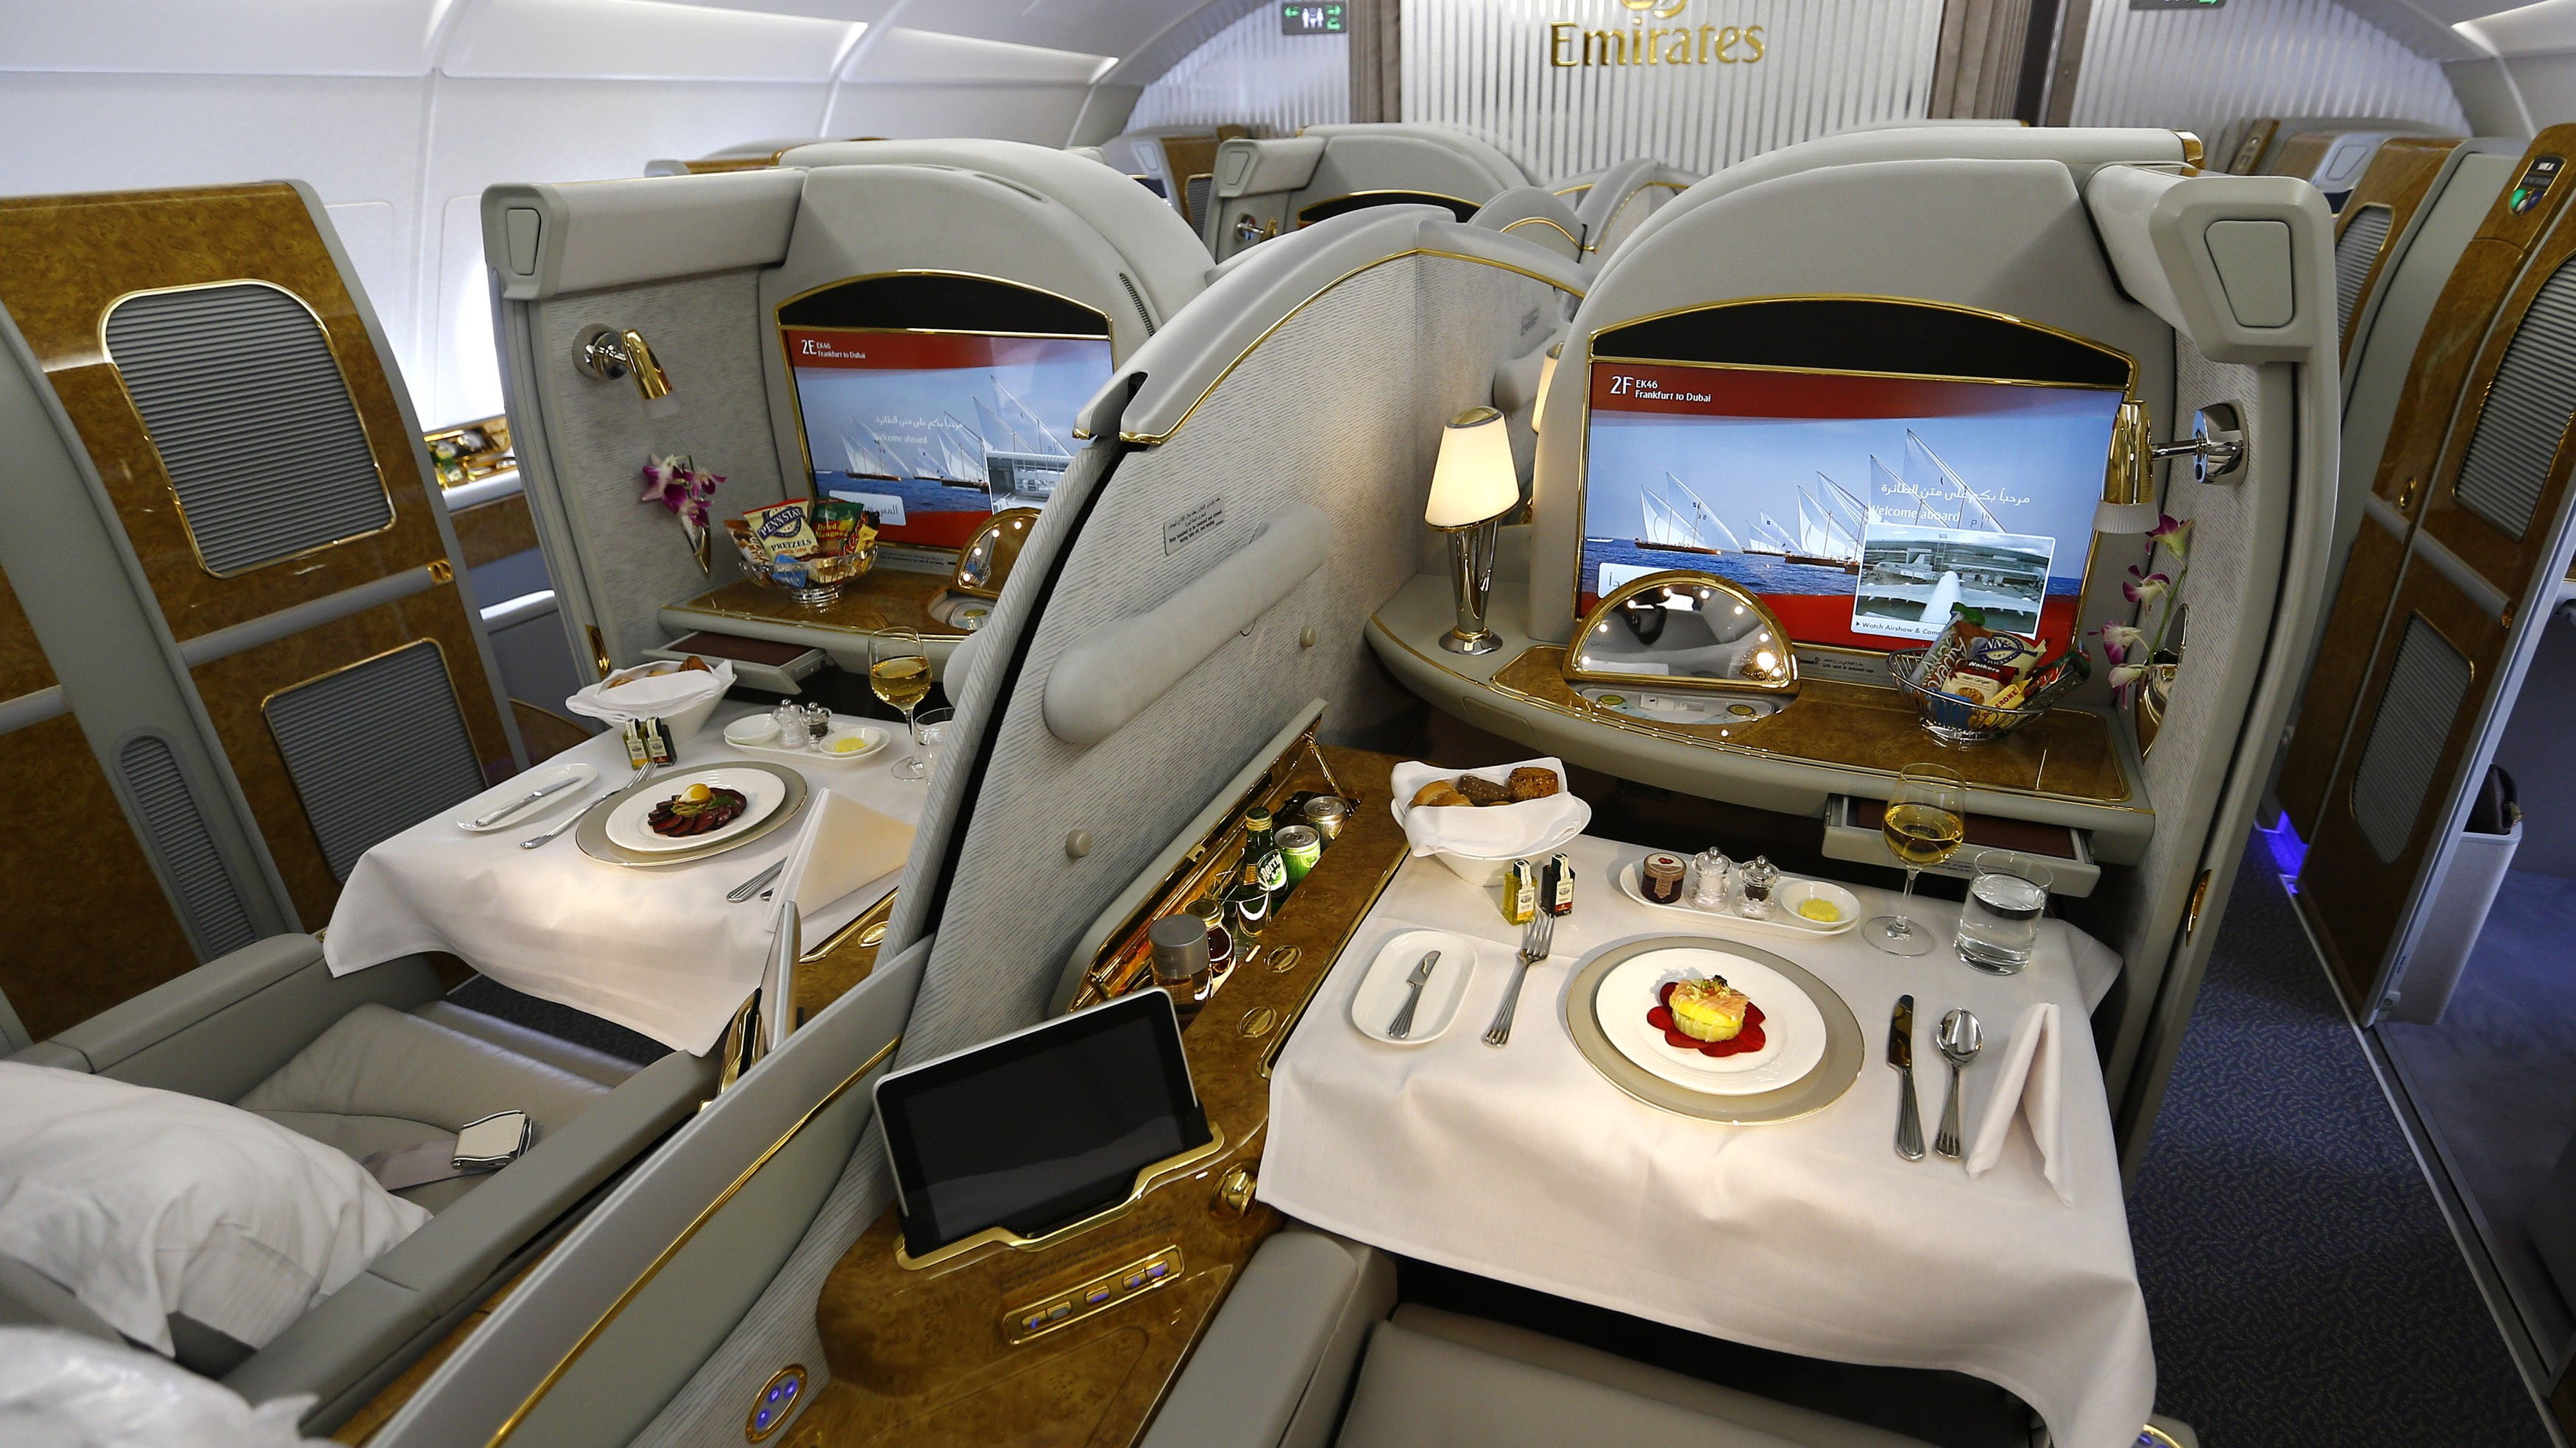 The Complete Guide To Faking Your Own Business Class